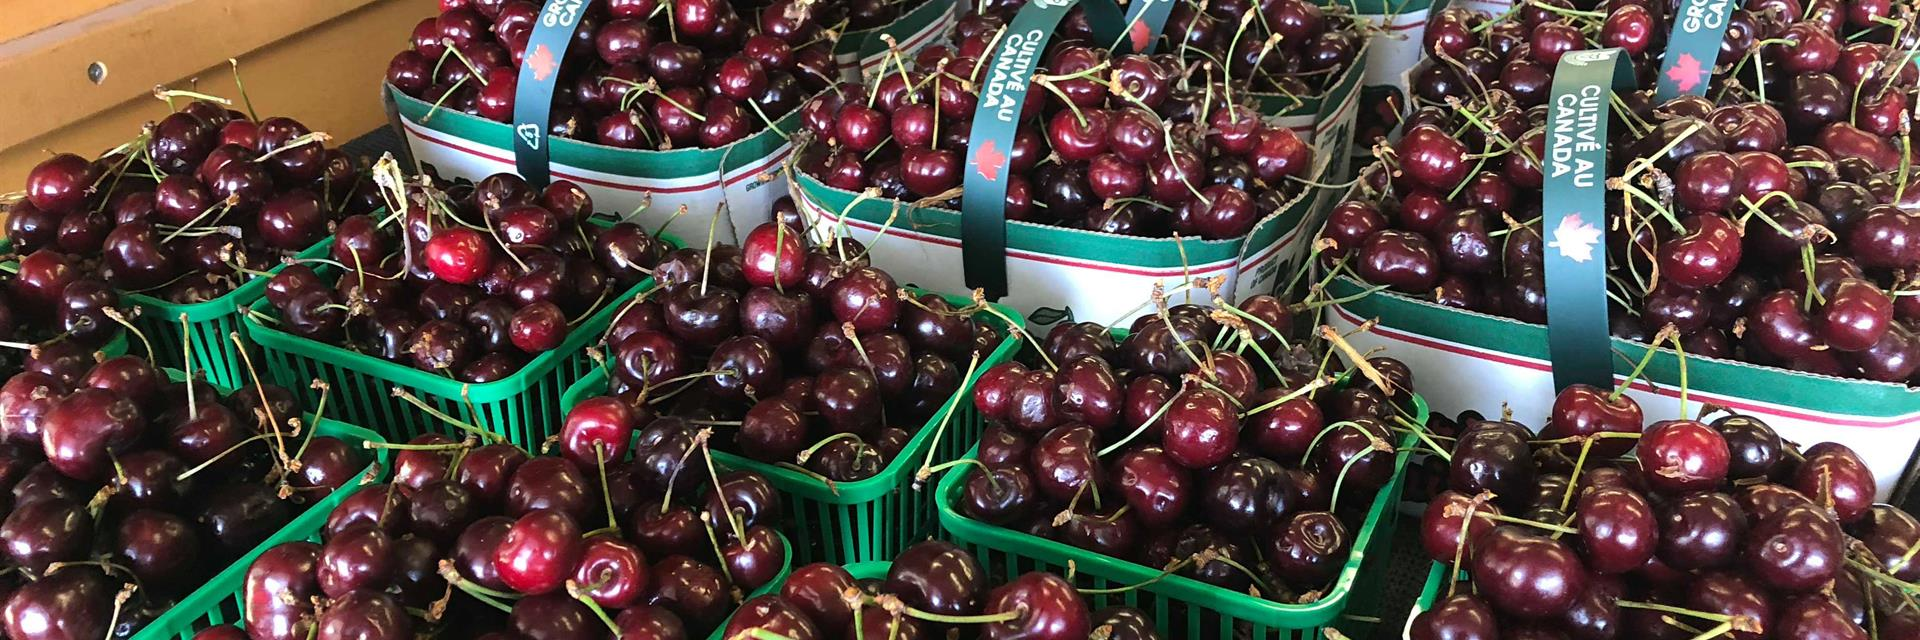 box of cherries from an orchard in blenheim